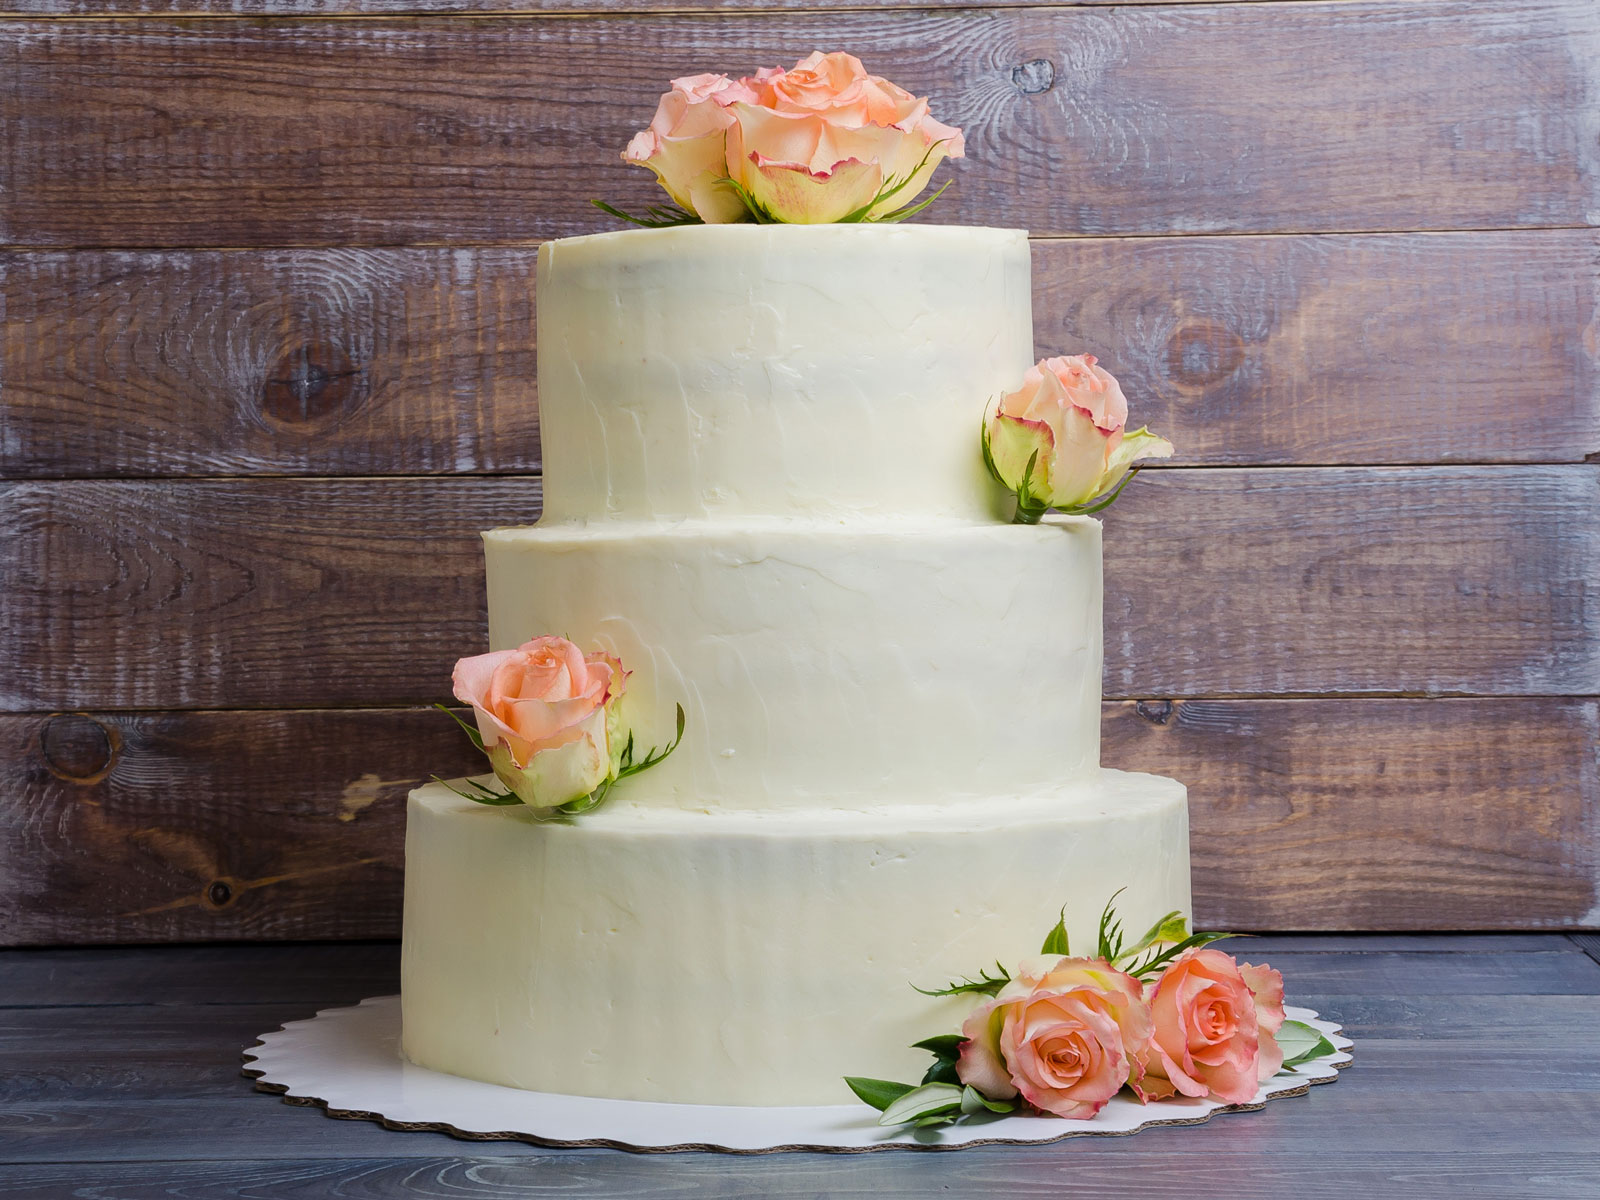 The Top Wedding Food Trends, According to Pinterest